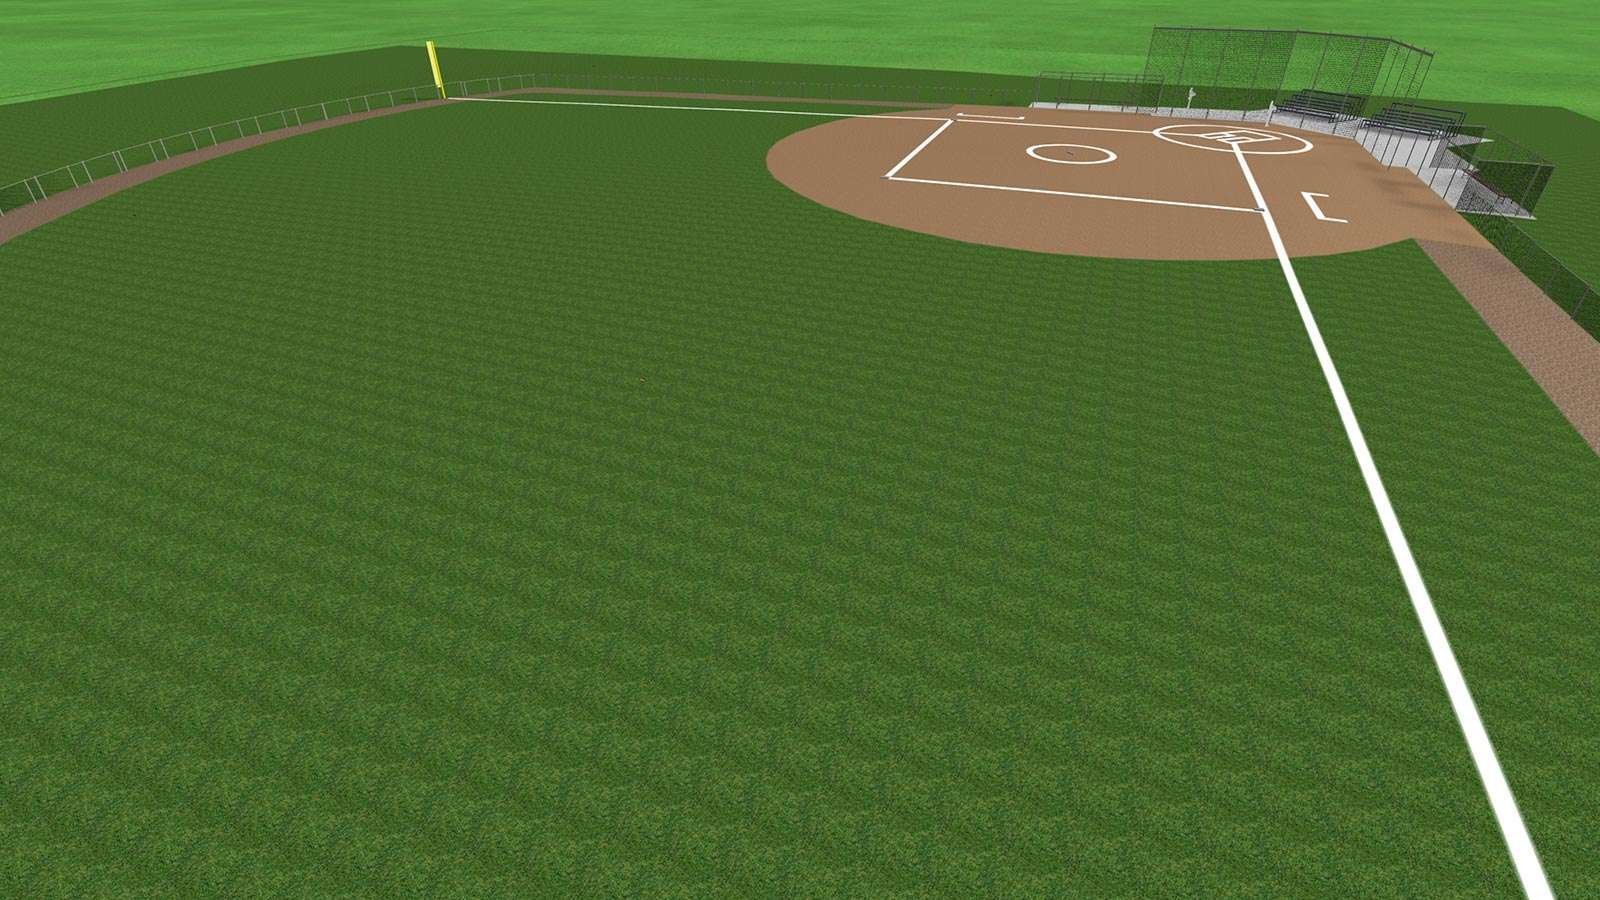 Commercial Landscaping Construction and Baseball Diamond in Appleton   Wisconsin. Landscaping and Commercial Construction Portfolio in Wisconsin